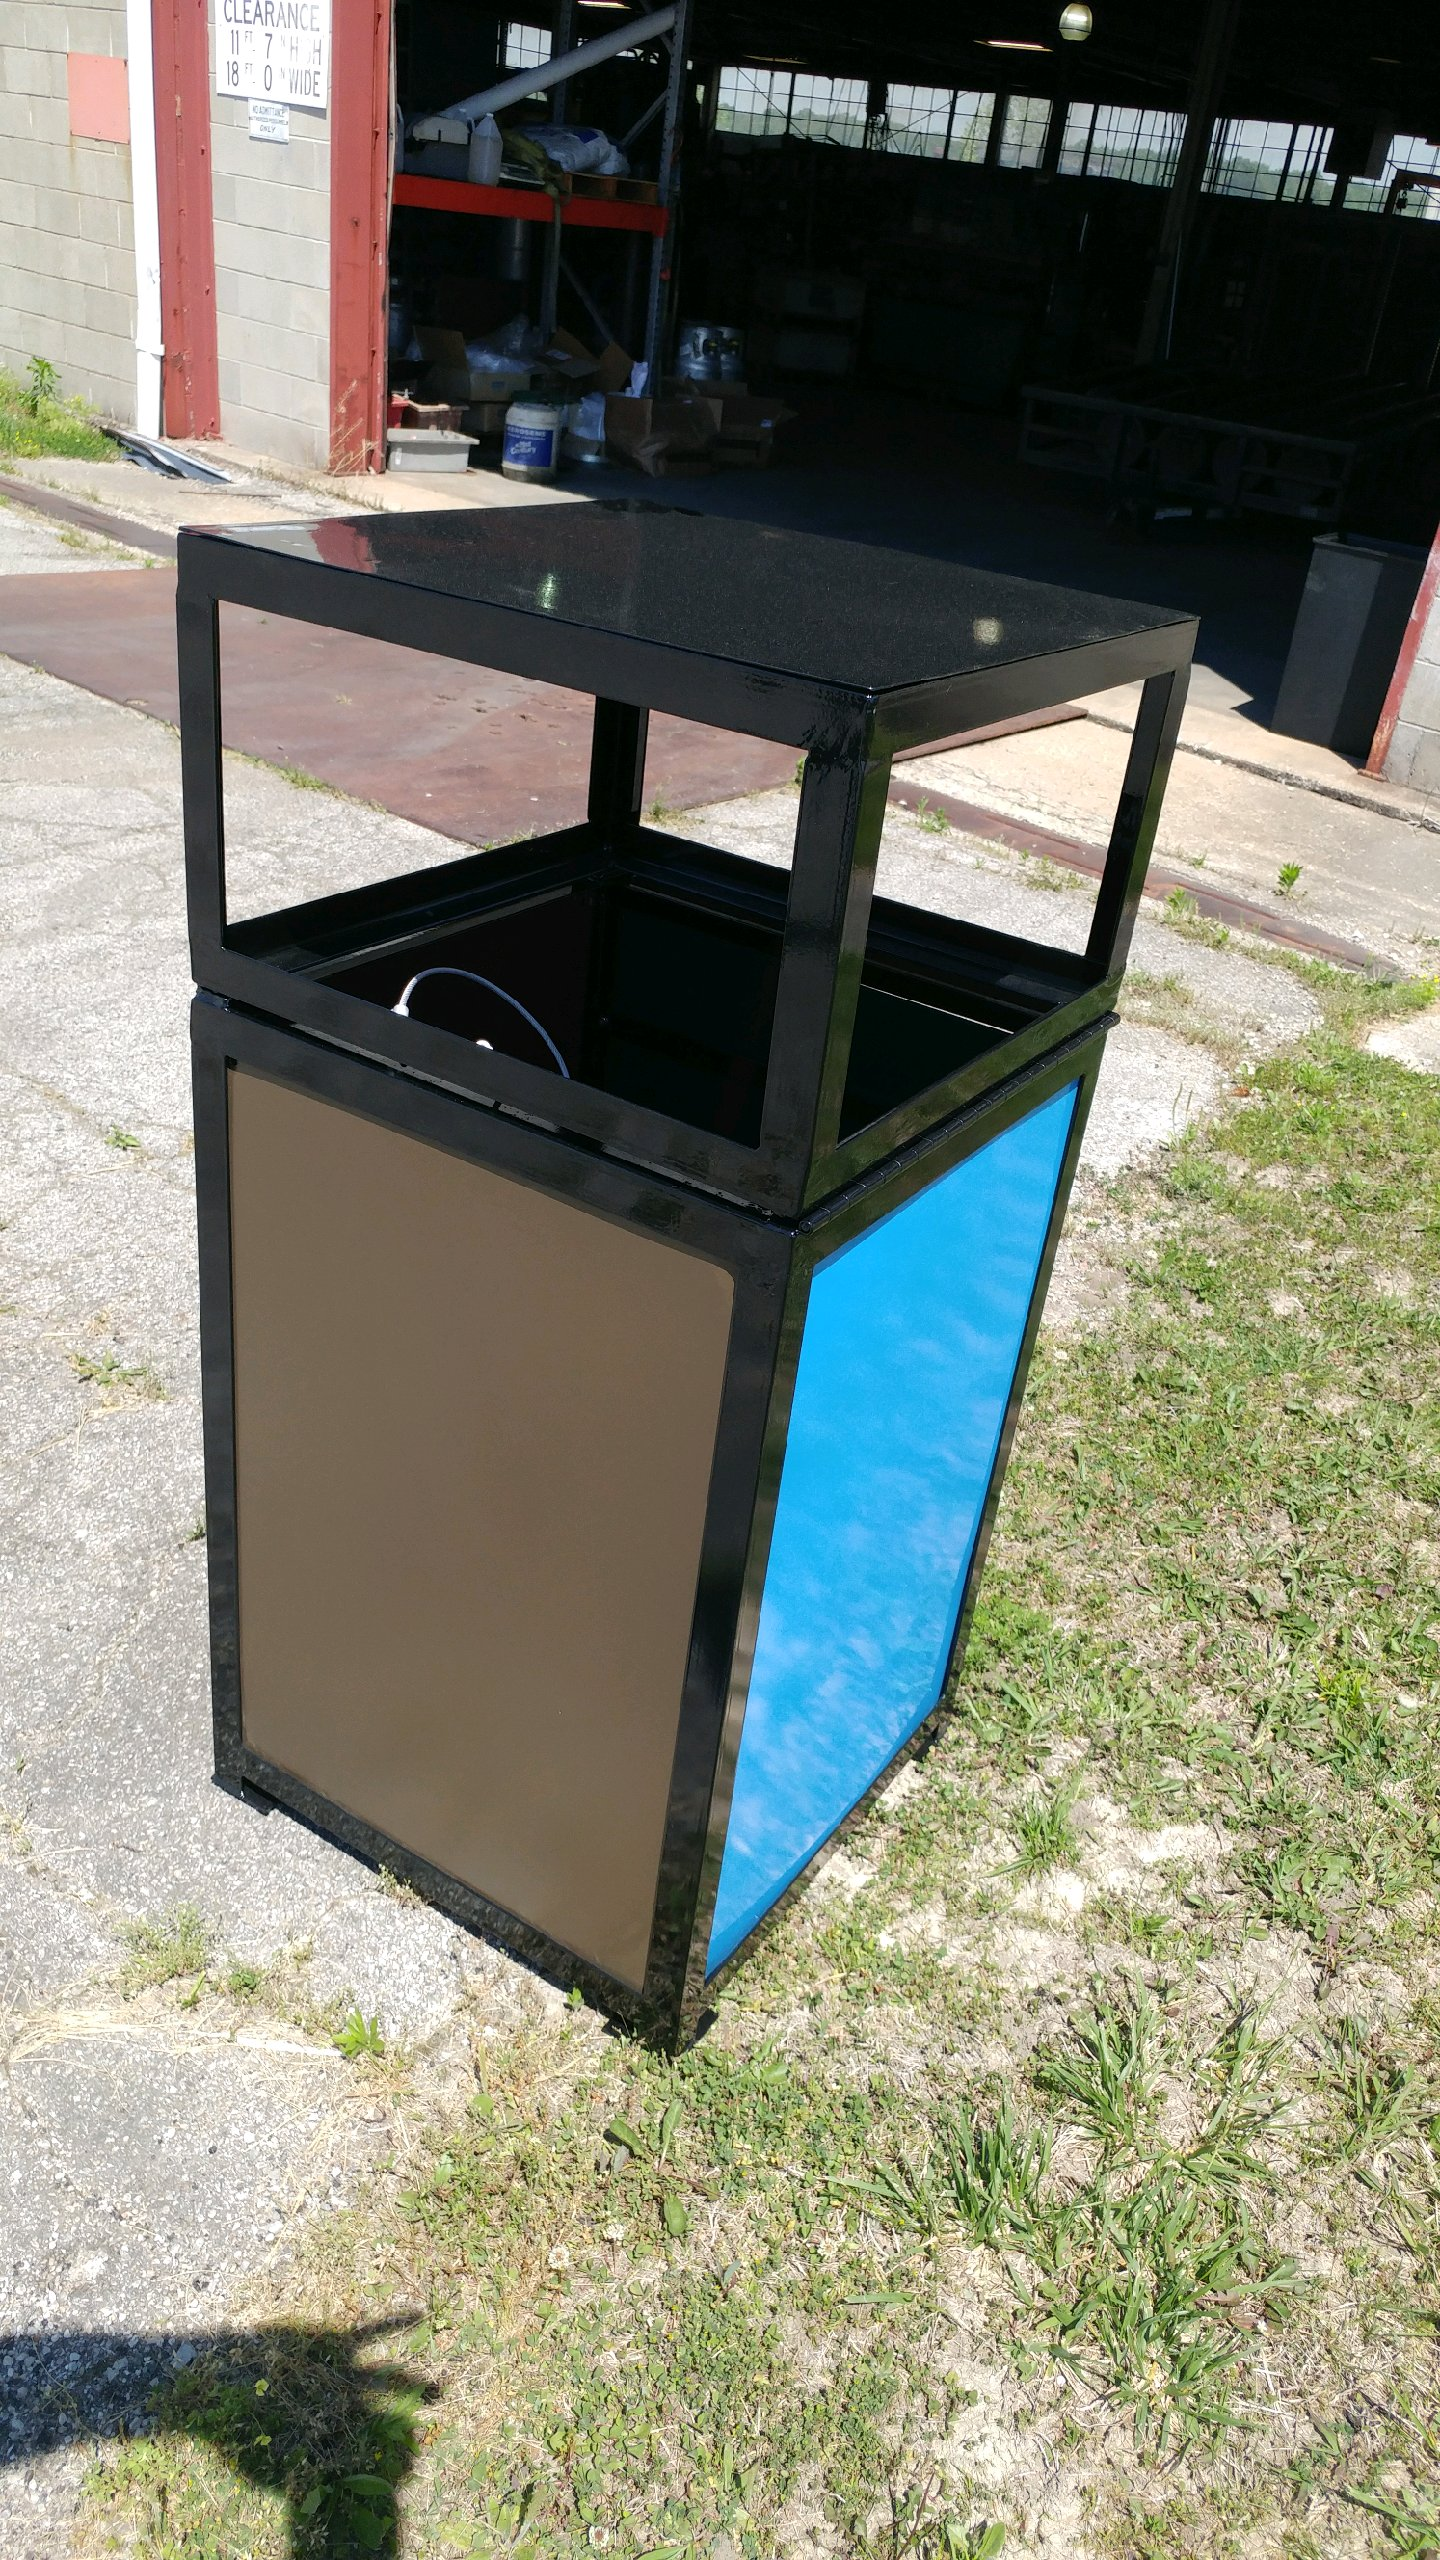 catalina waste management receptacle